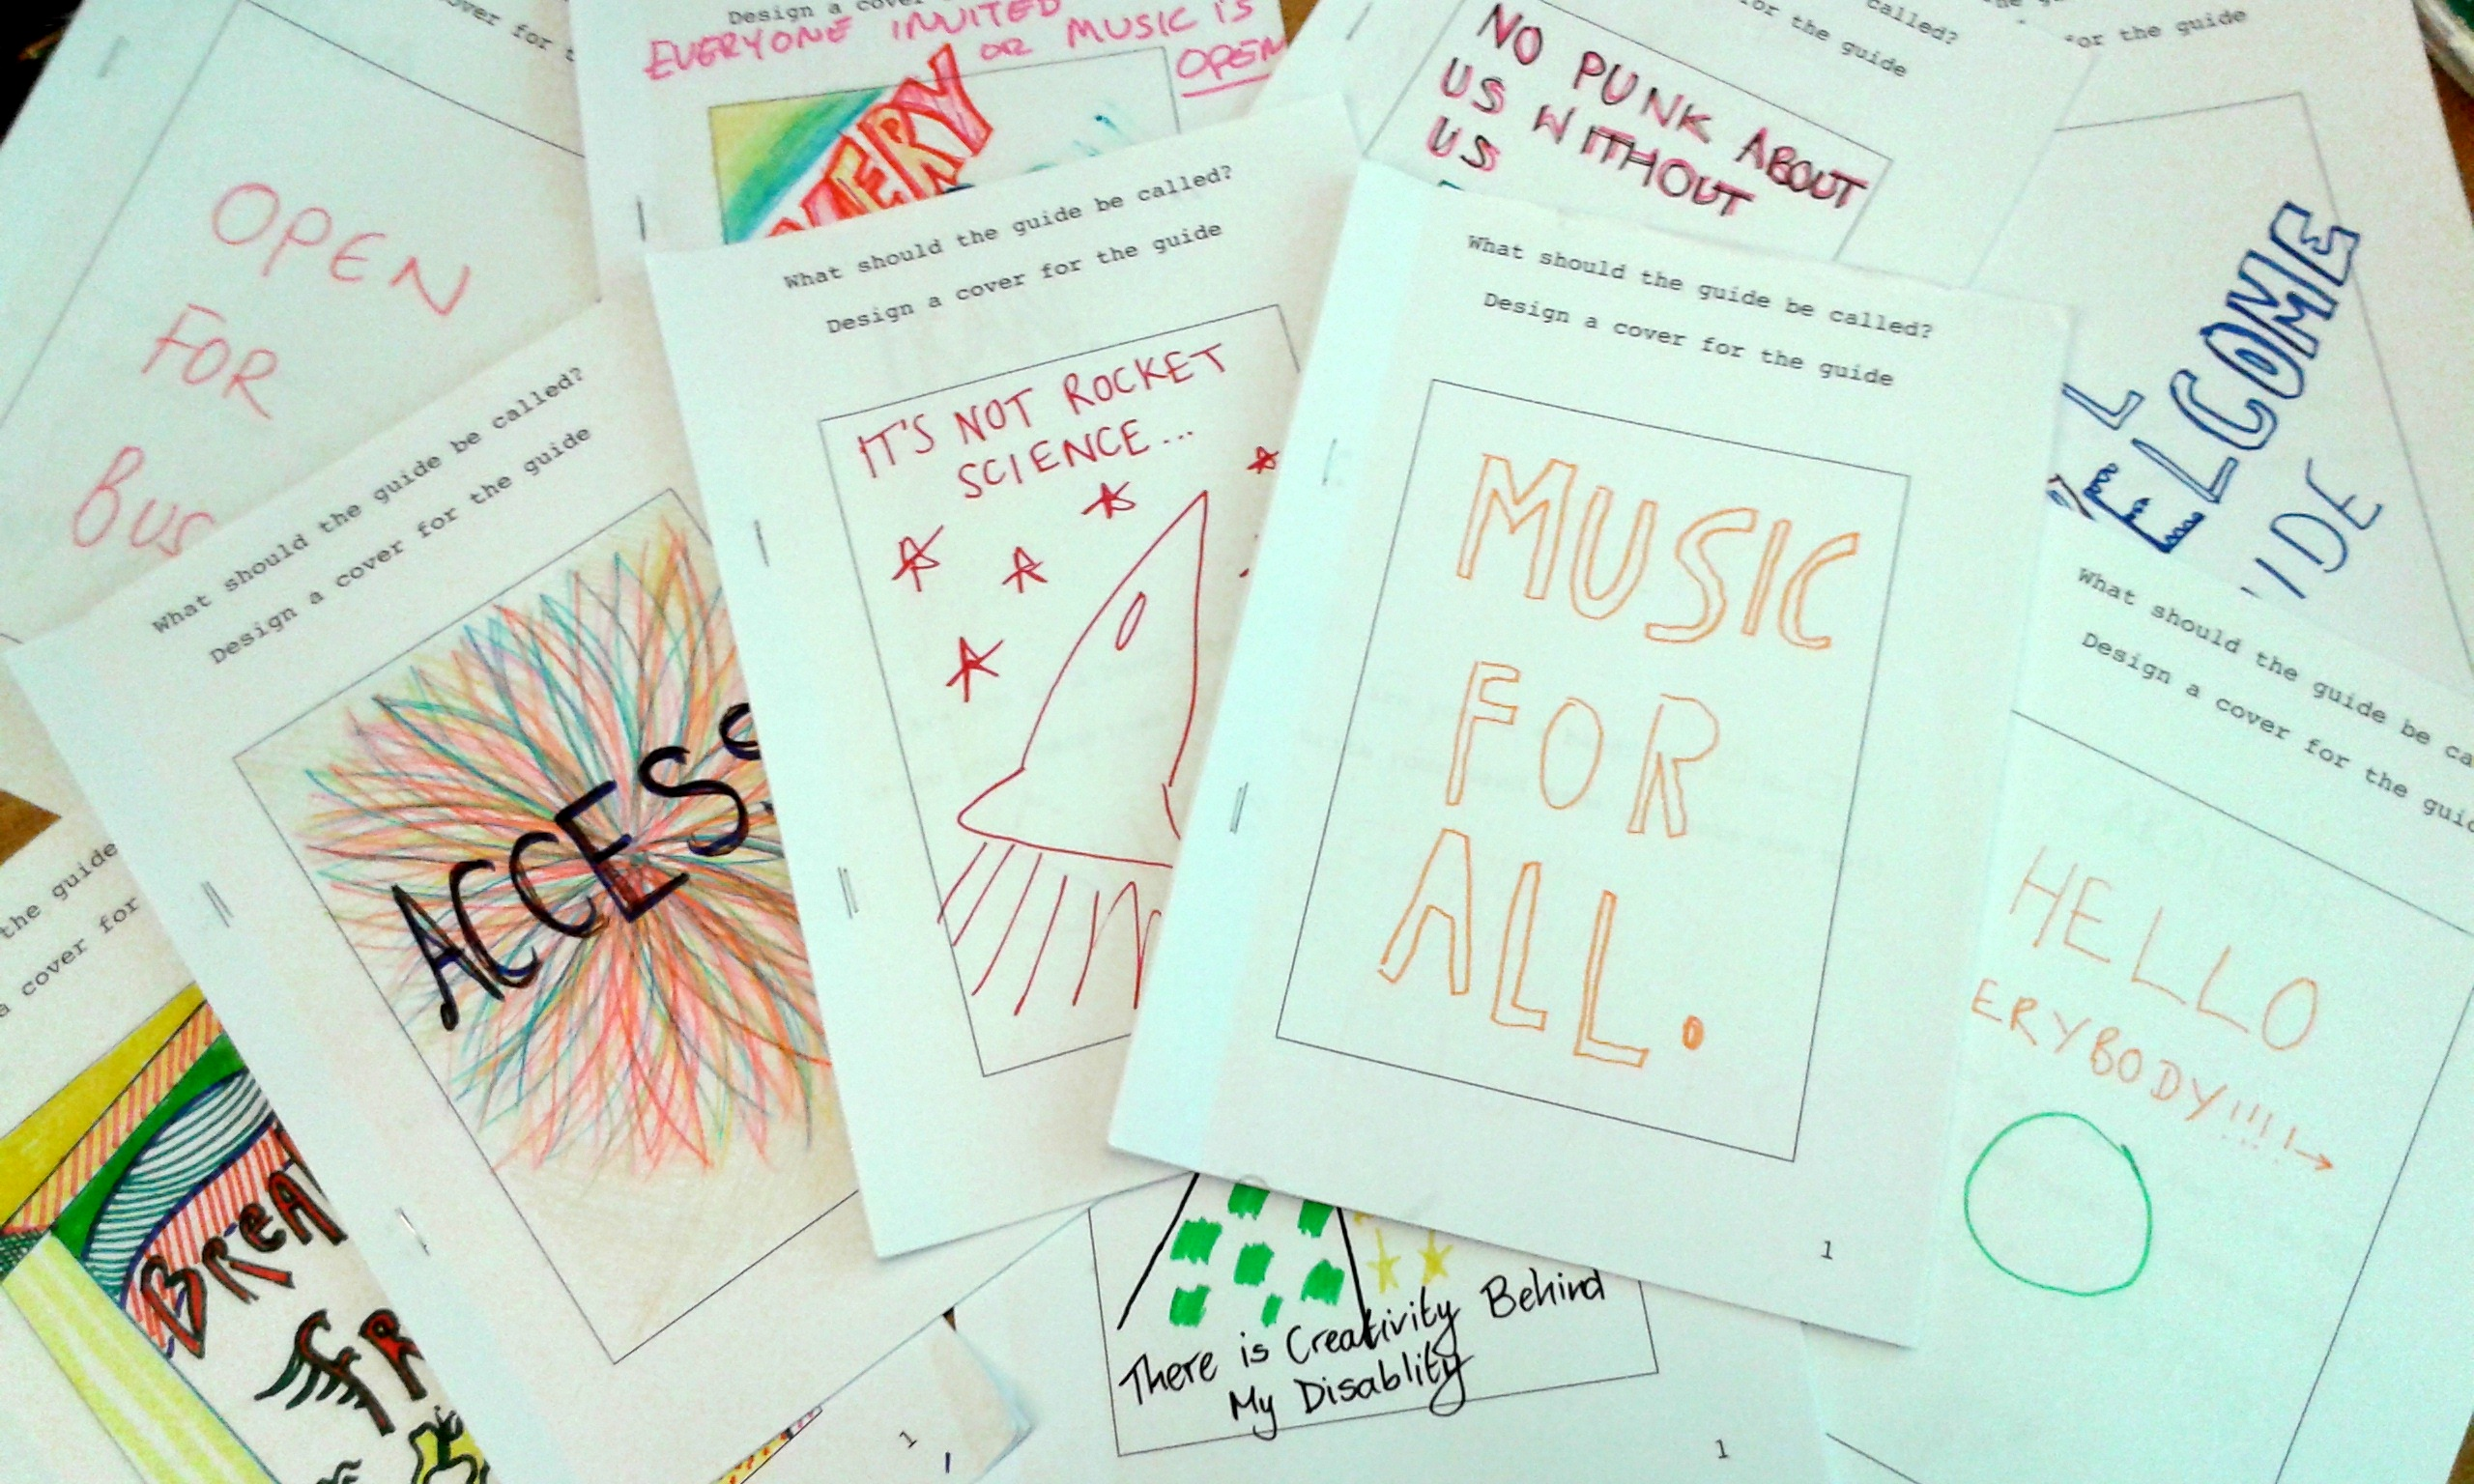 A selection of the guide covers created by workshop participants, with titles such as 'Access', 'It's not rocket science...', 'Music For All', and 'No punk about us without us'.